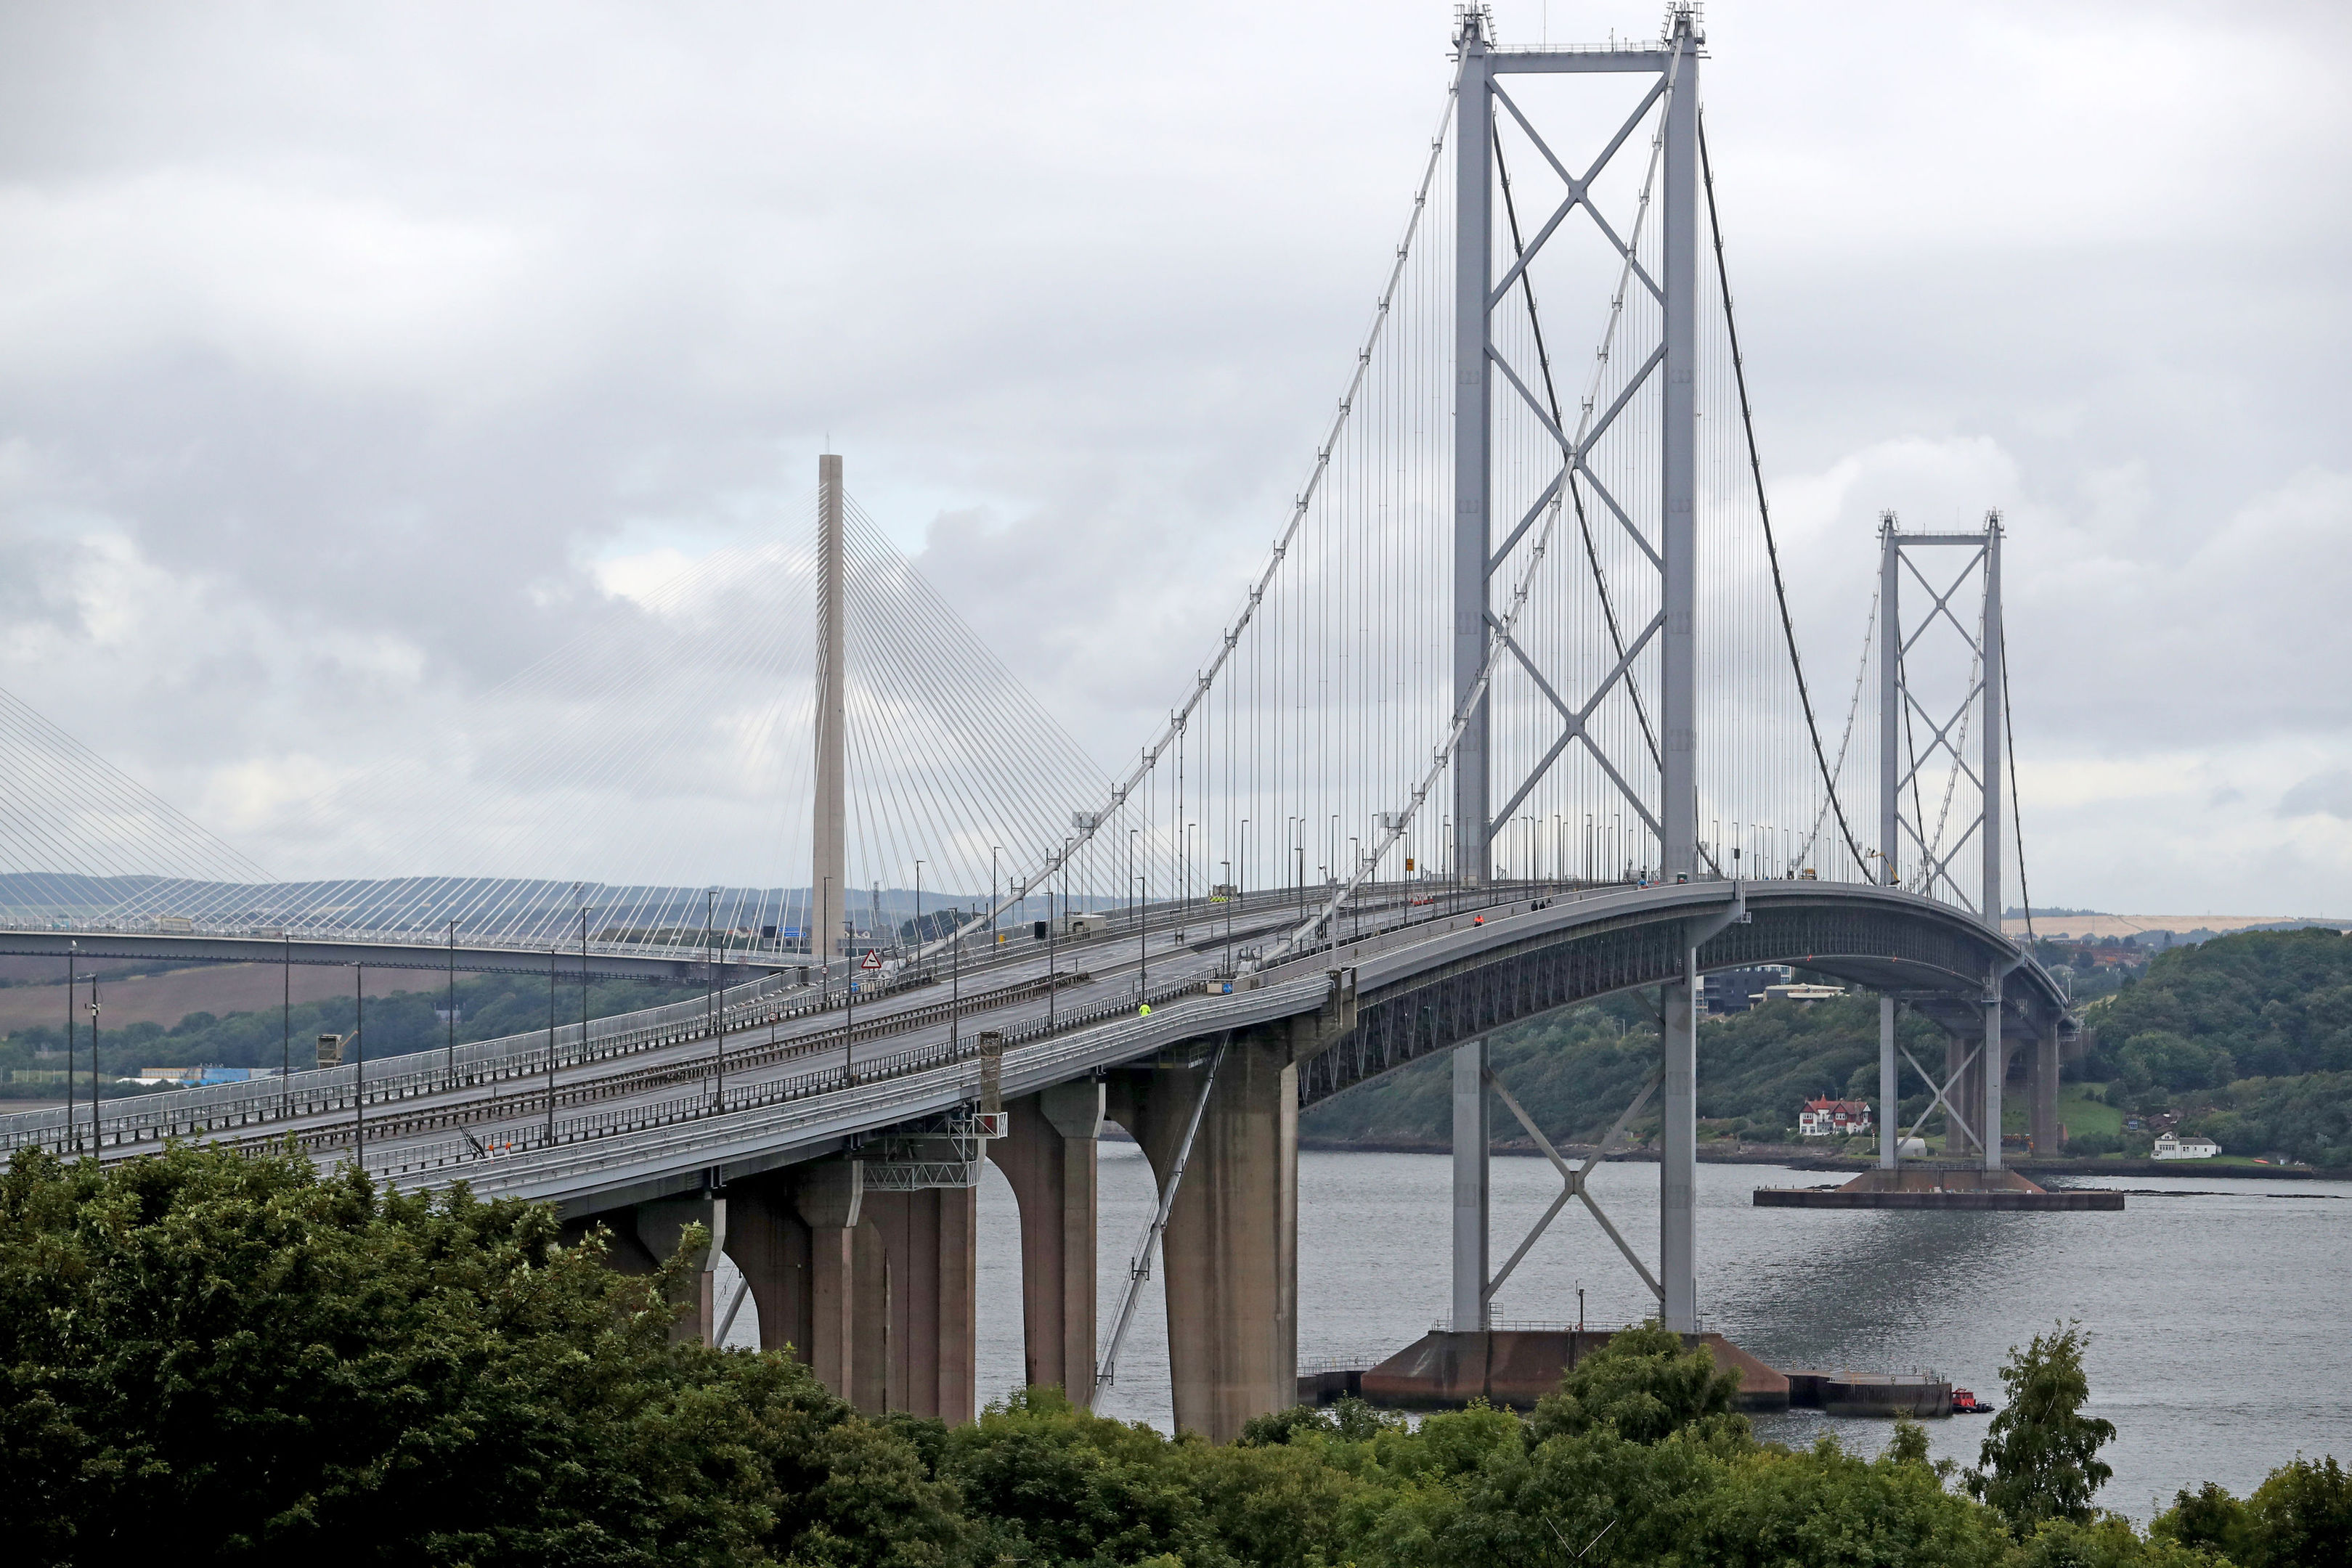 The Forth Road Bridge will be carrying far less traffic when it reopens.